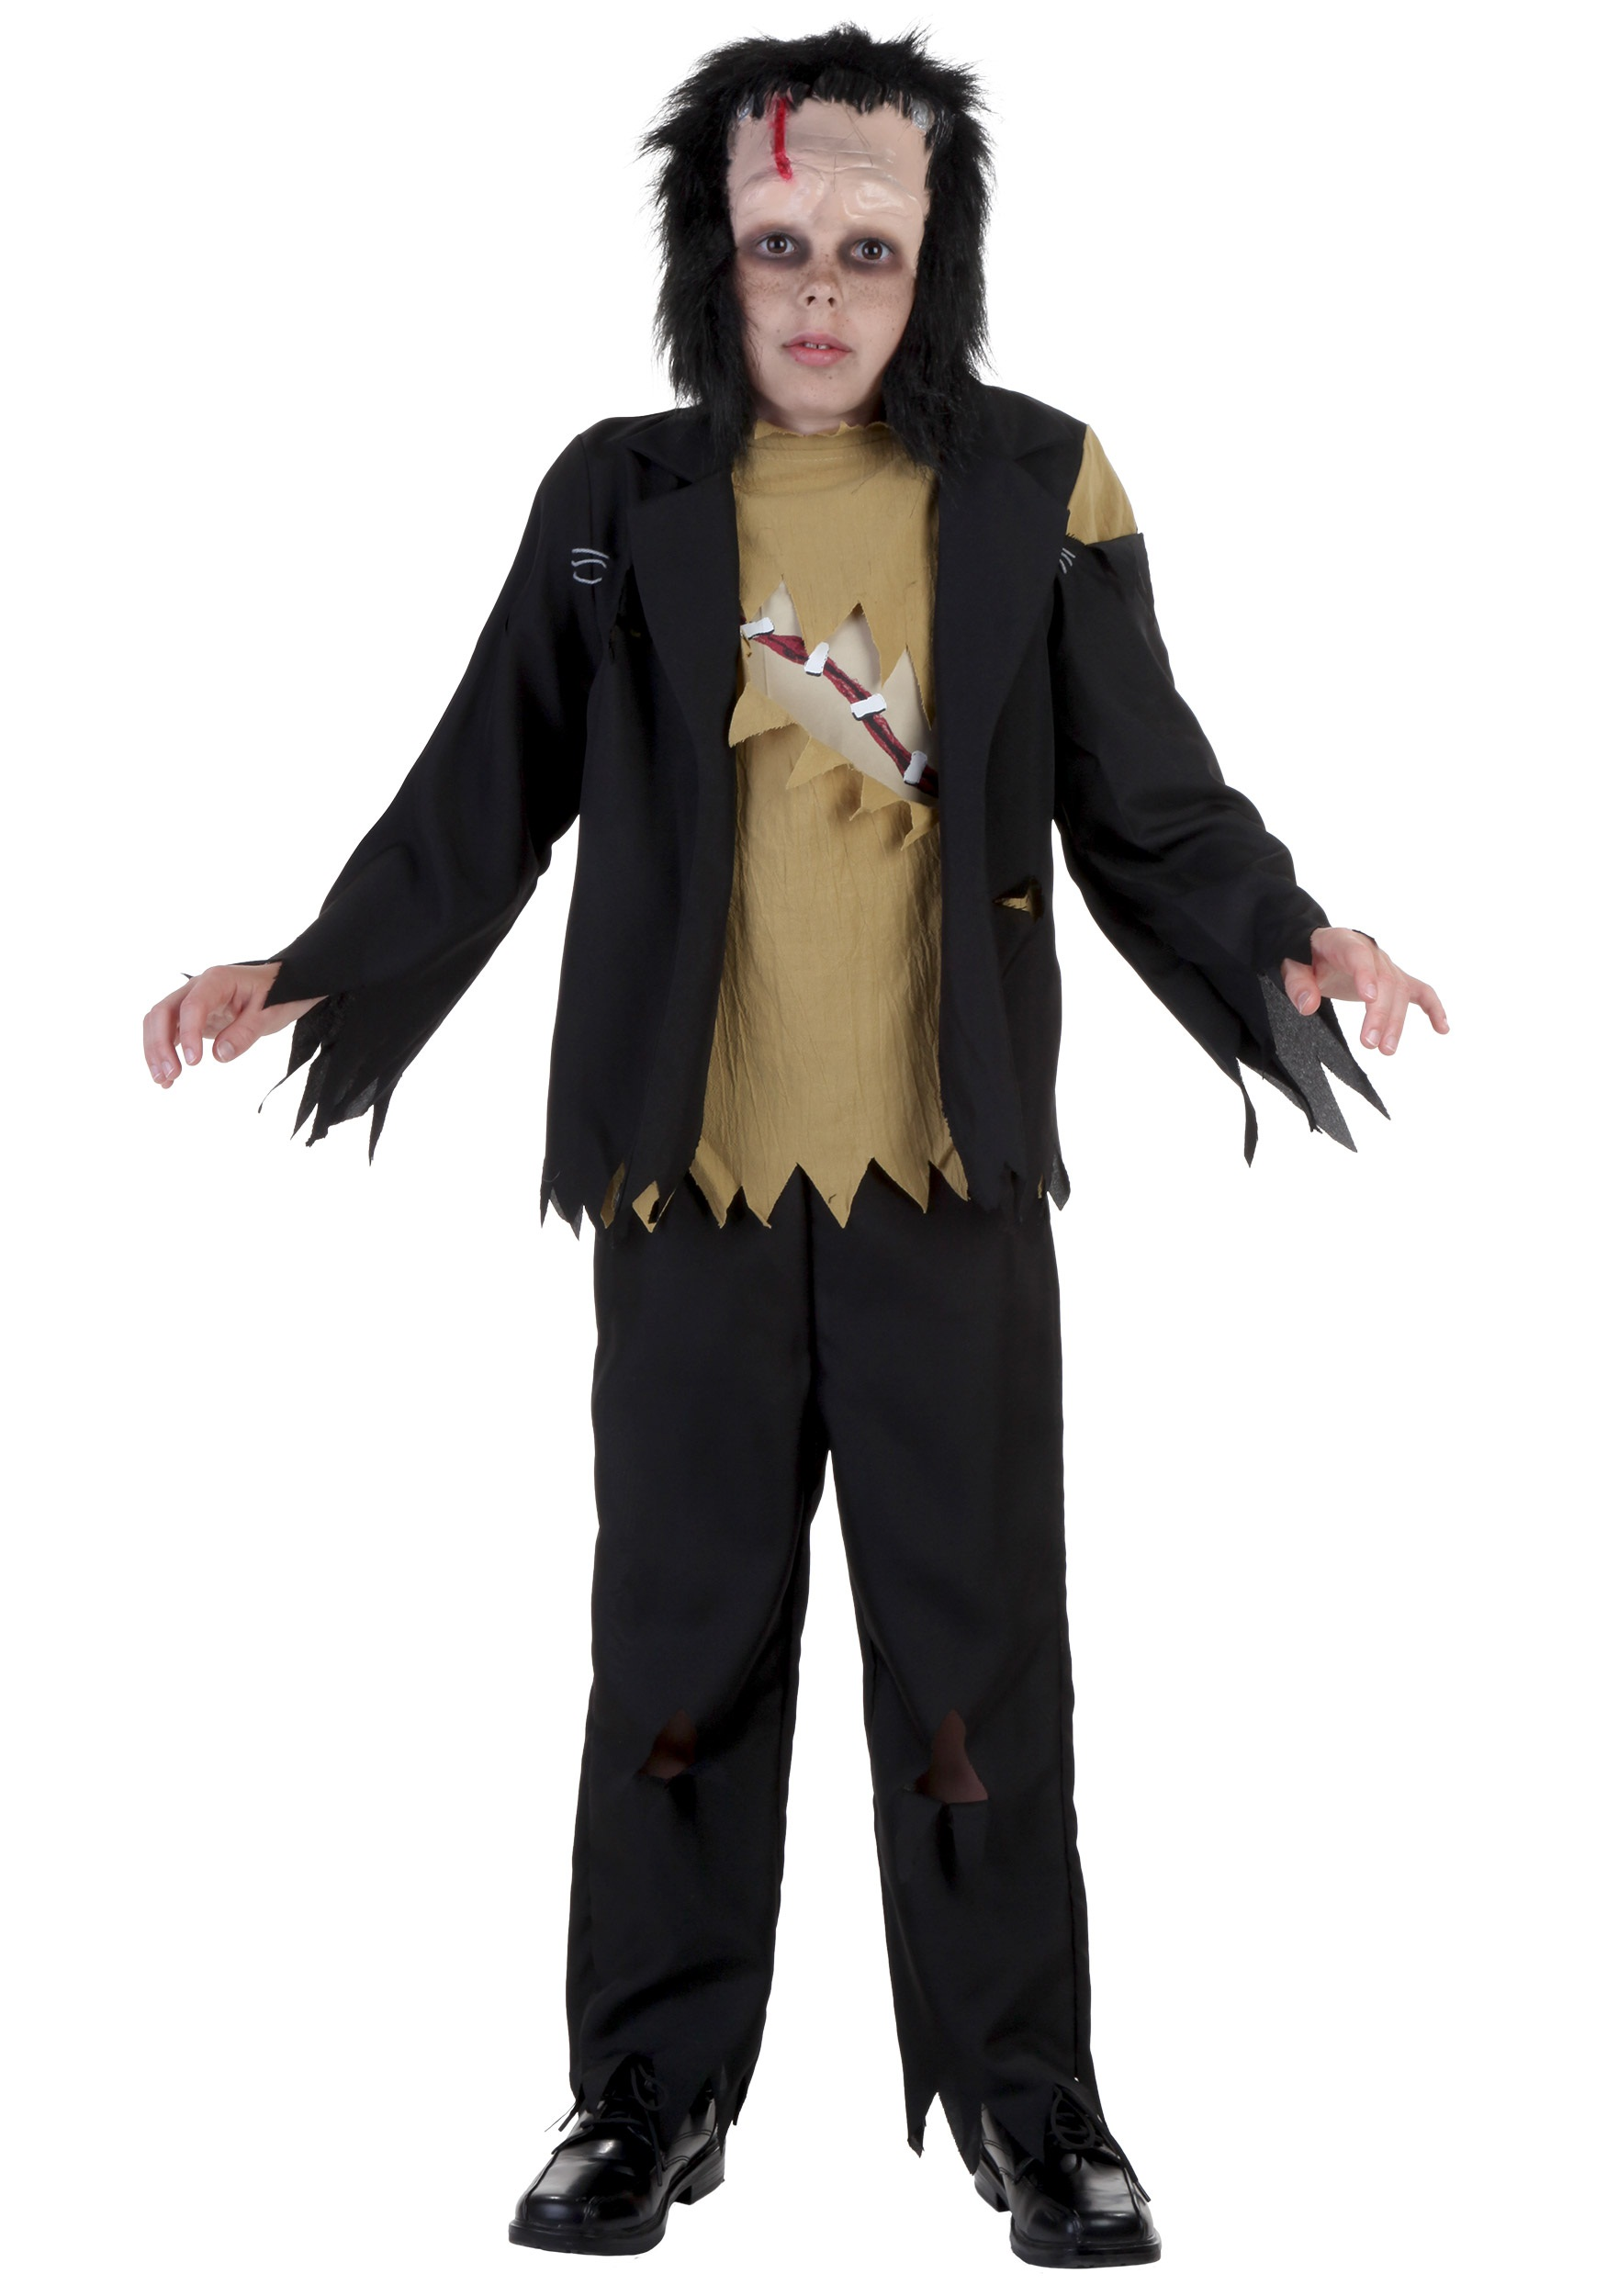 kids reanimated monster costume - halloween costume ideas 2018